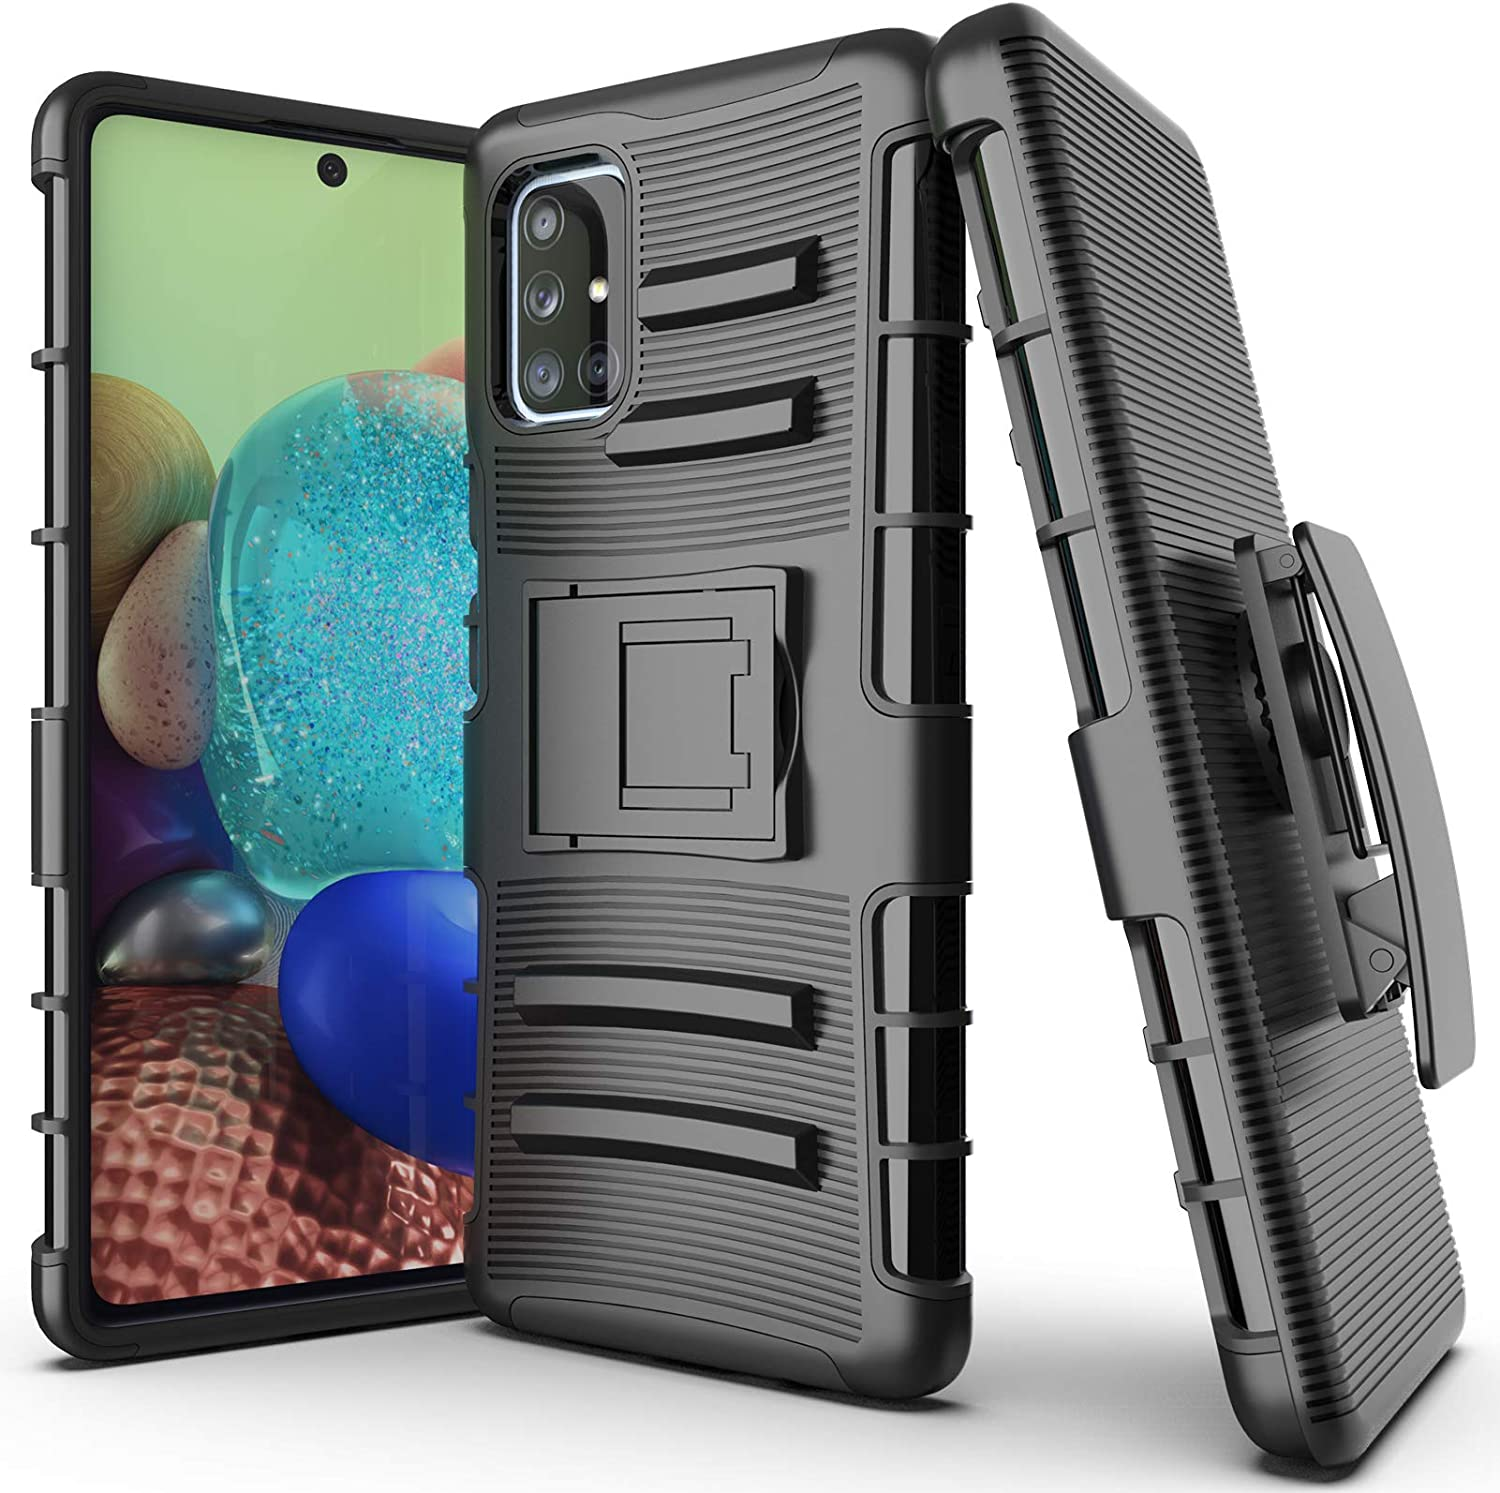 FANUBA for Galaxy A71 5G Case [Not for A71 5G UW Version] Belt Clip with Kickstand Military Grade Shockproof Holster Cover for Galaxy A71 5G - Black